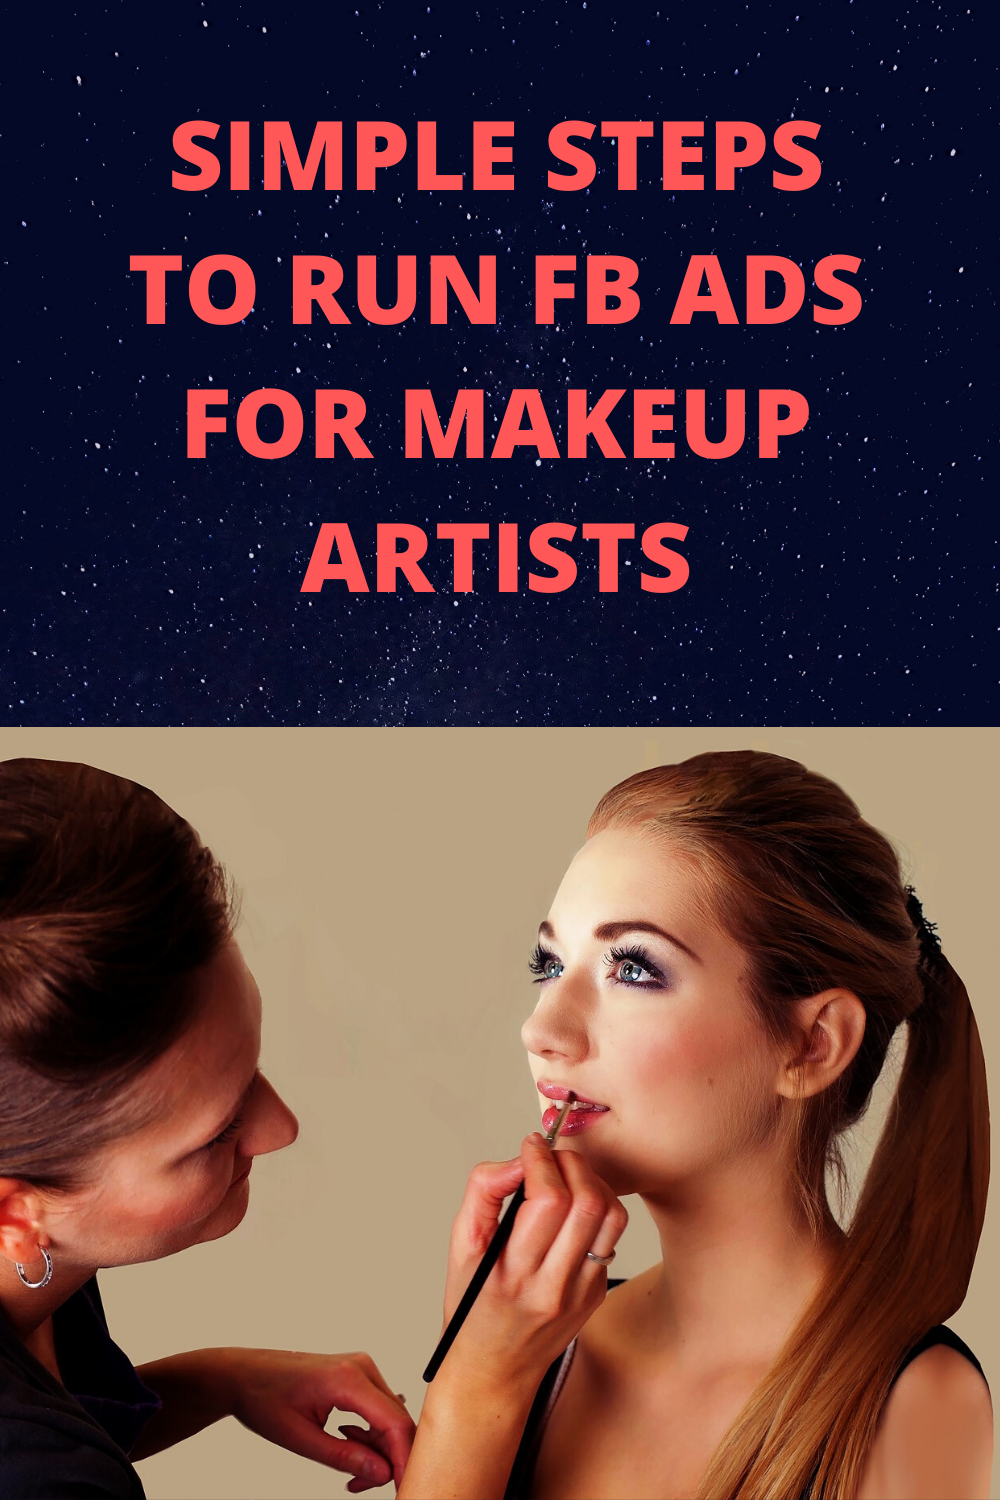 Simple Steps to Run Facebook Ads for Makeup Artists in